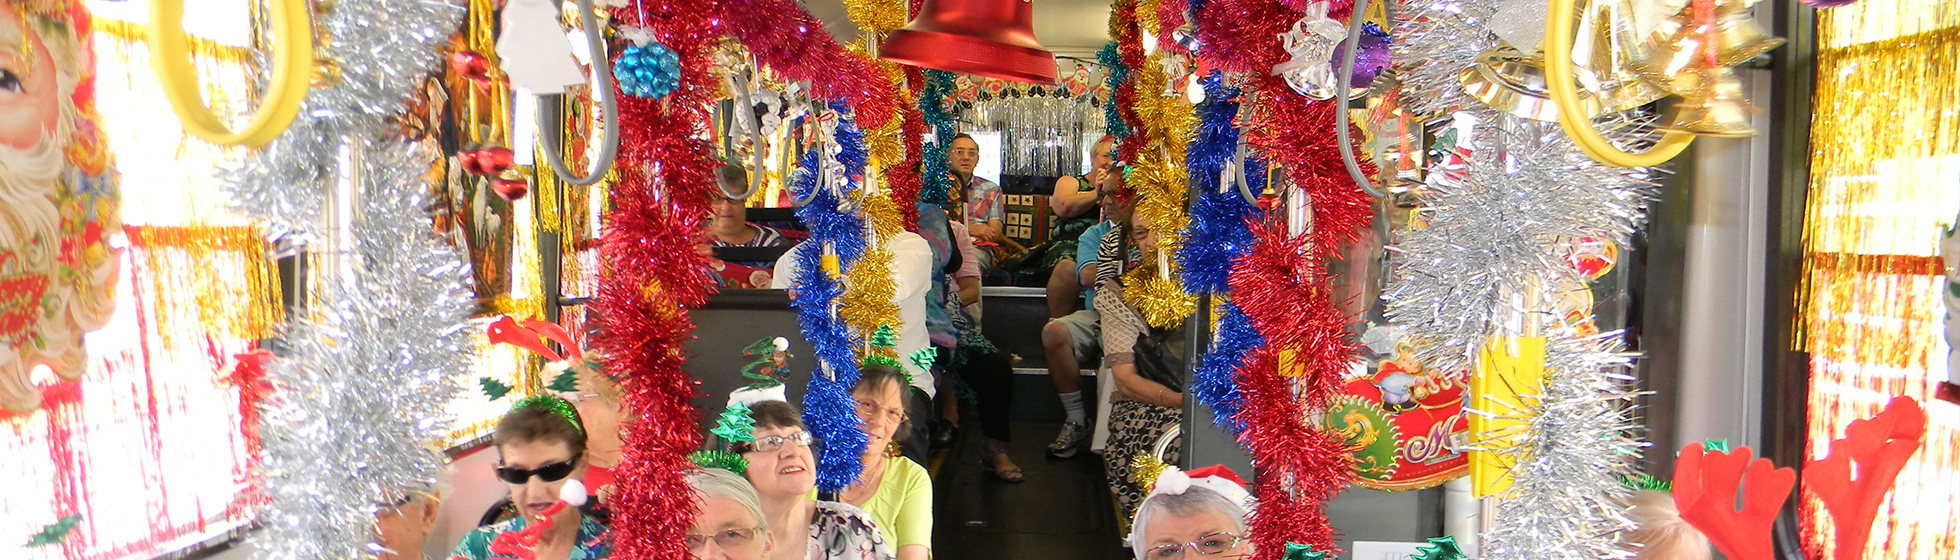 Travellers enjoying the decorated Christmas Bus